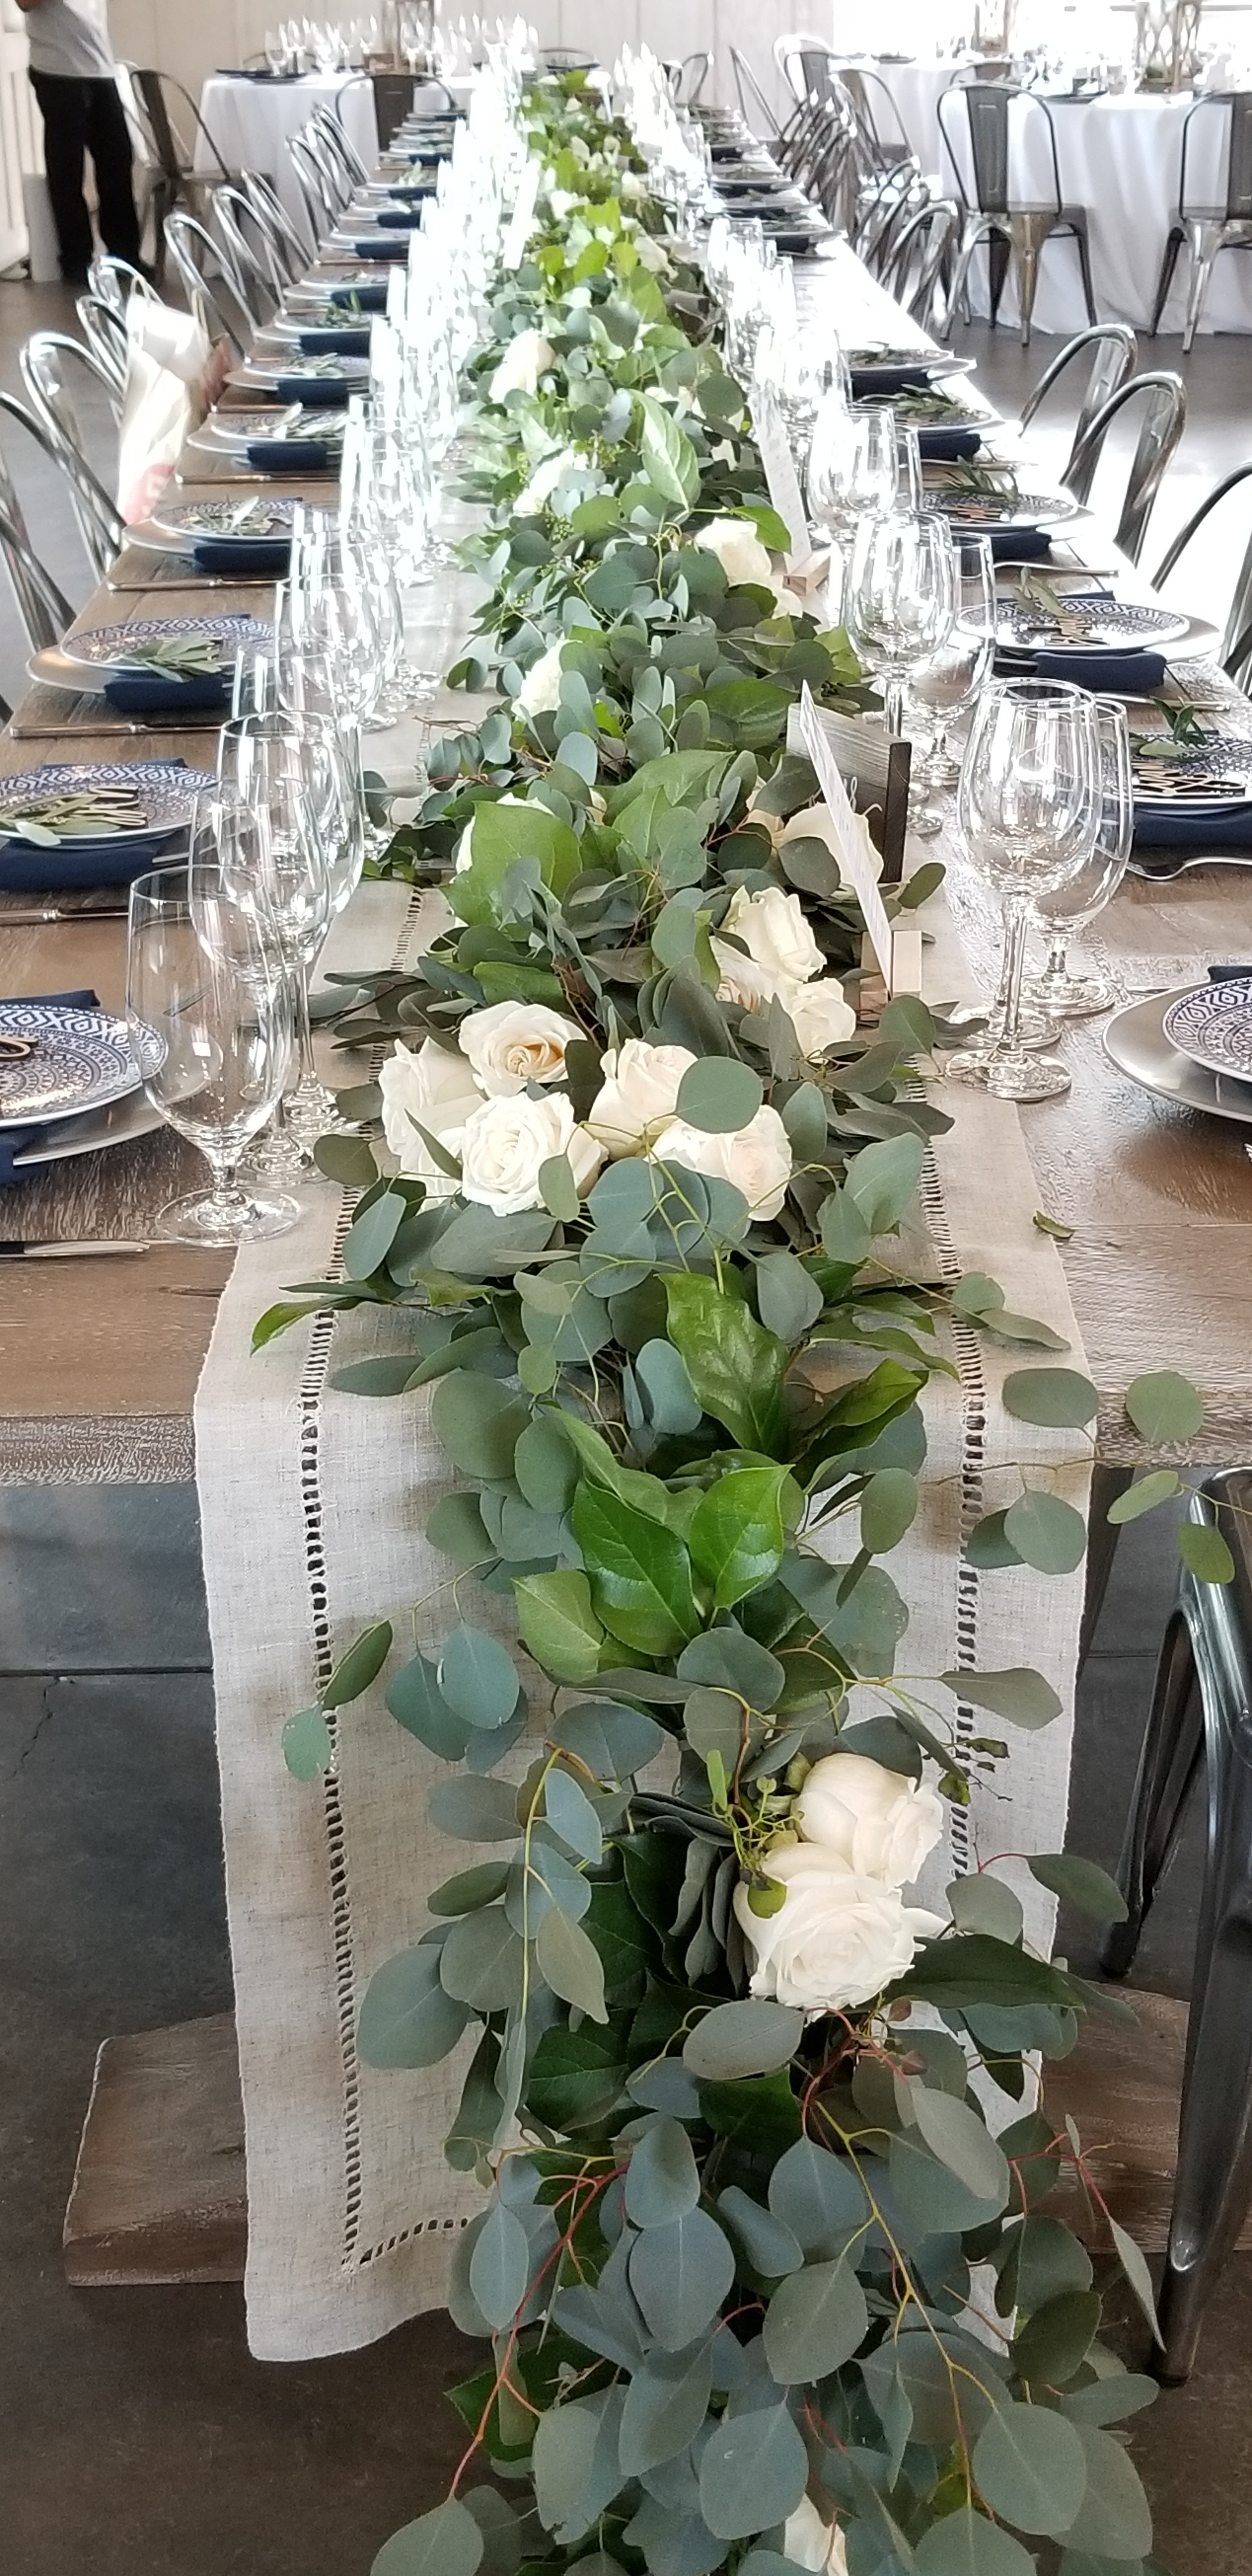 Long farm table lined with a fresh eucalyptus runner, laced with fresh garden roses. Perfect Sonoma wine country wedding reception.